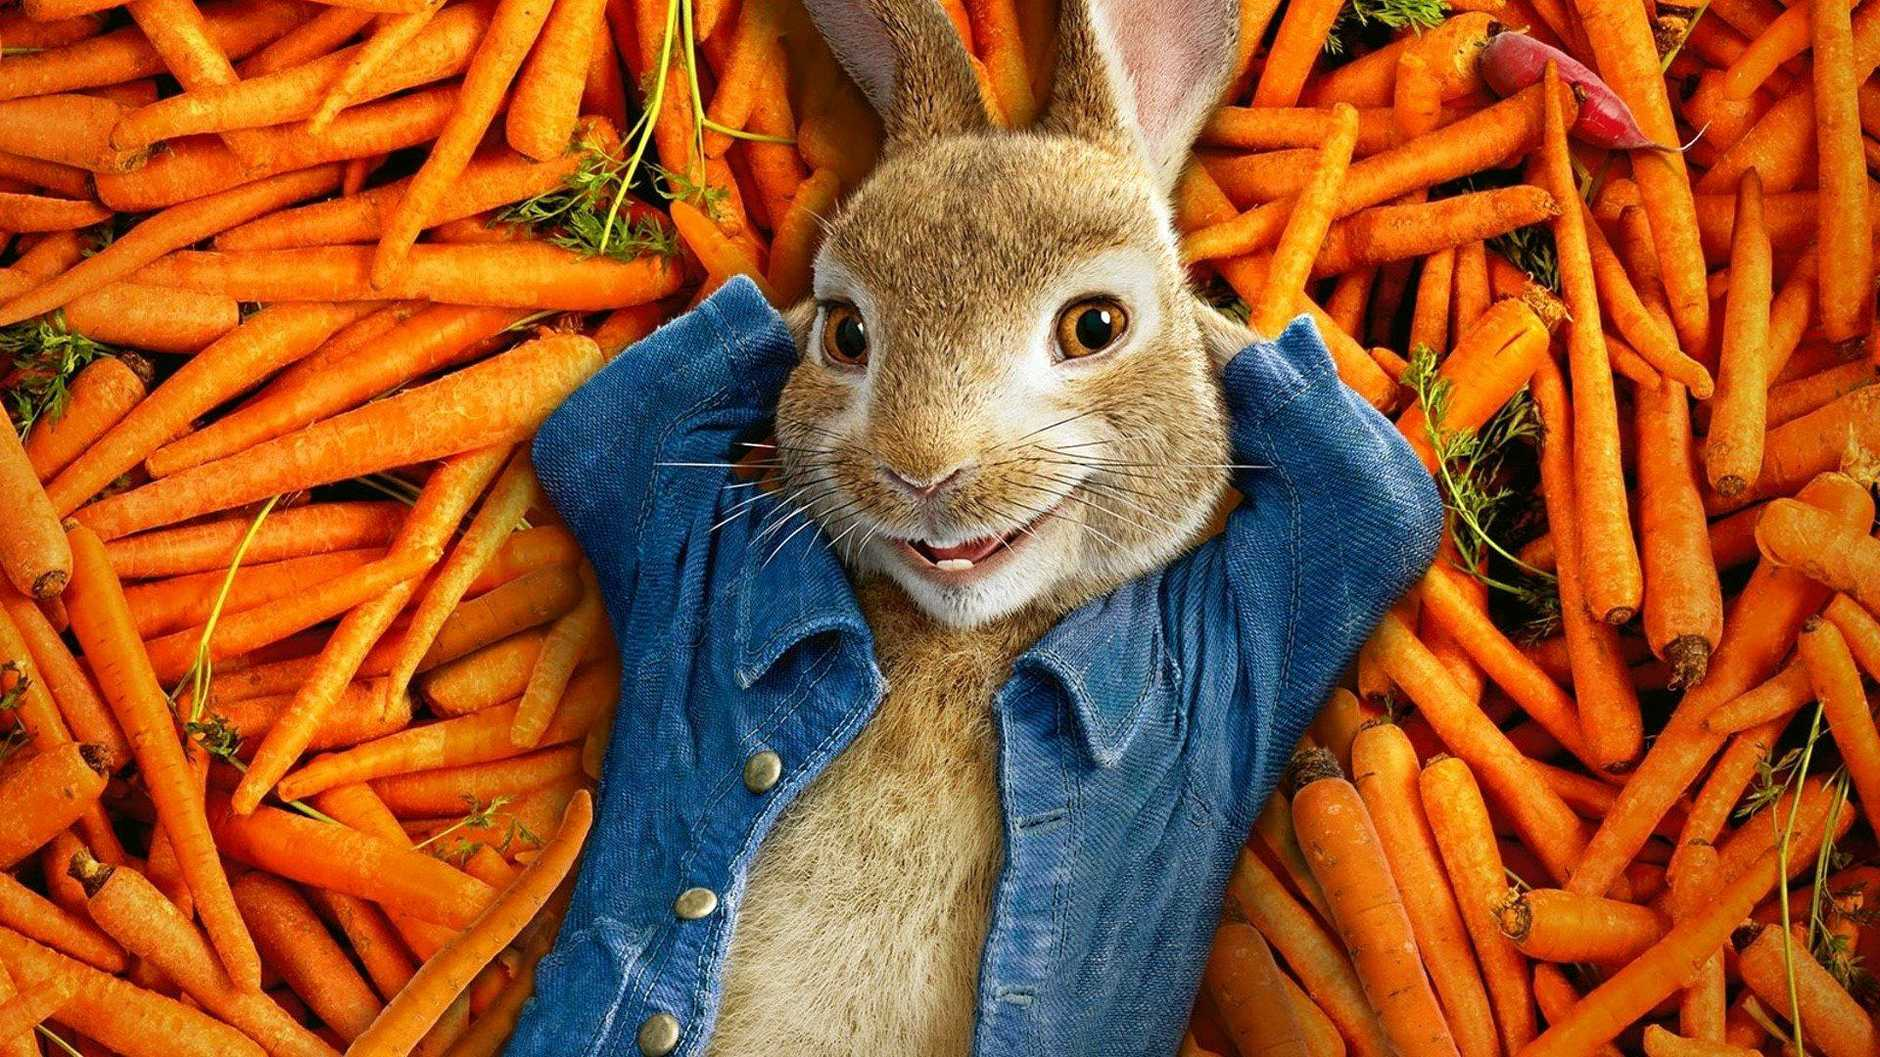 Starry Nights Outdoor Movies will be screening 'Peter Rabbit' on the Cooroy Library Rooftop on Friday November 2.